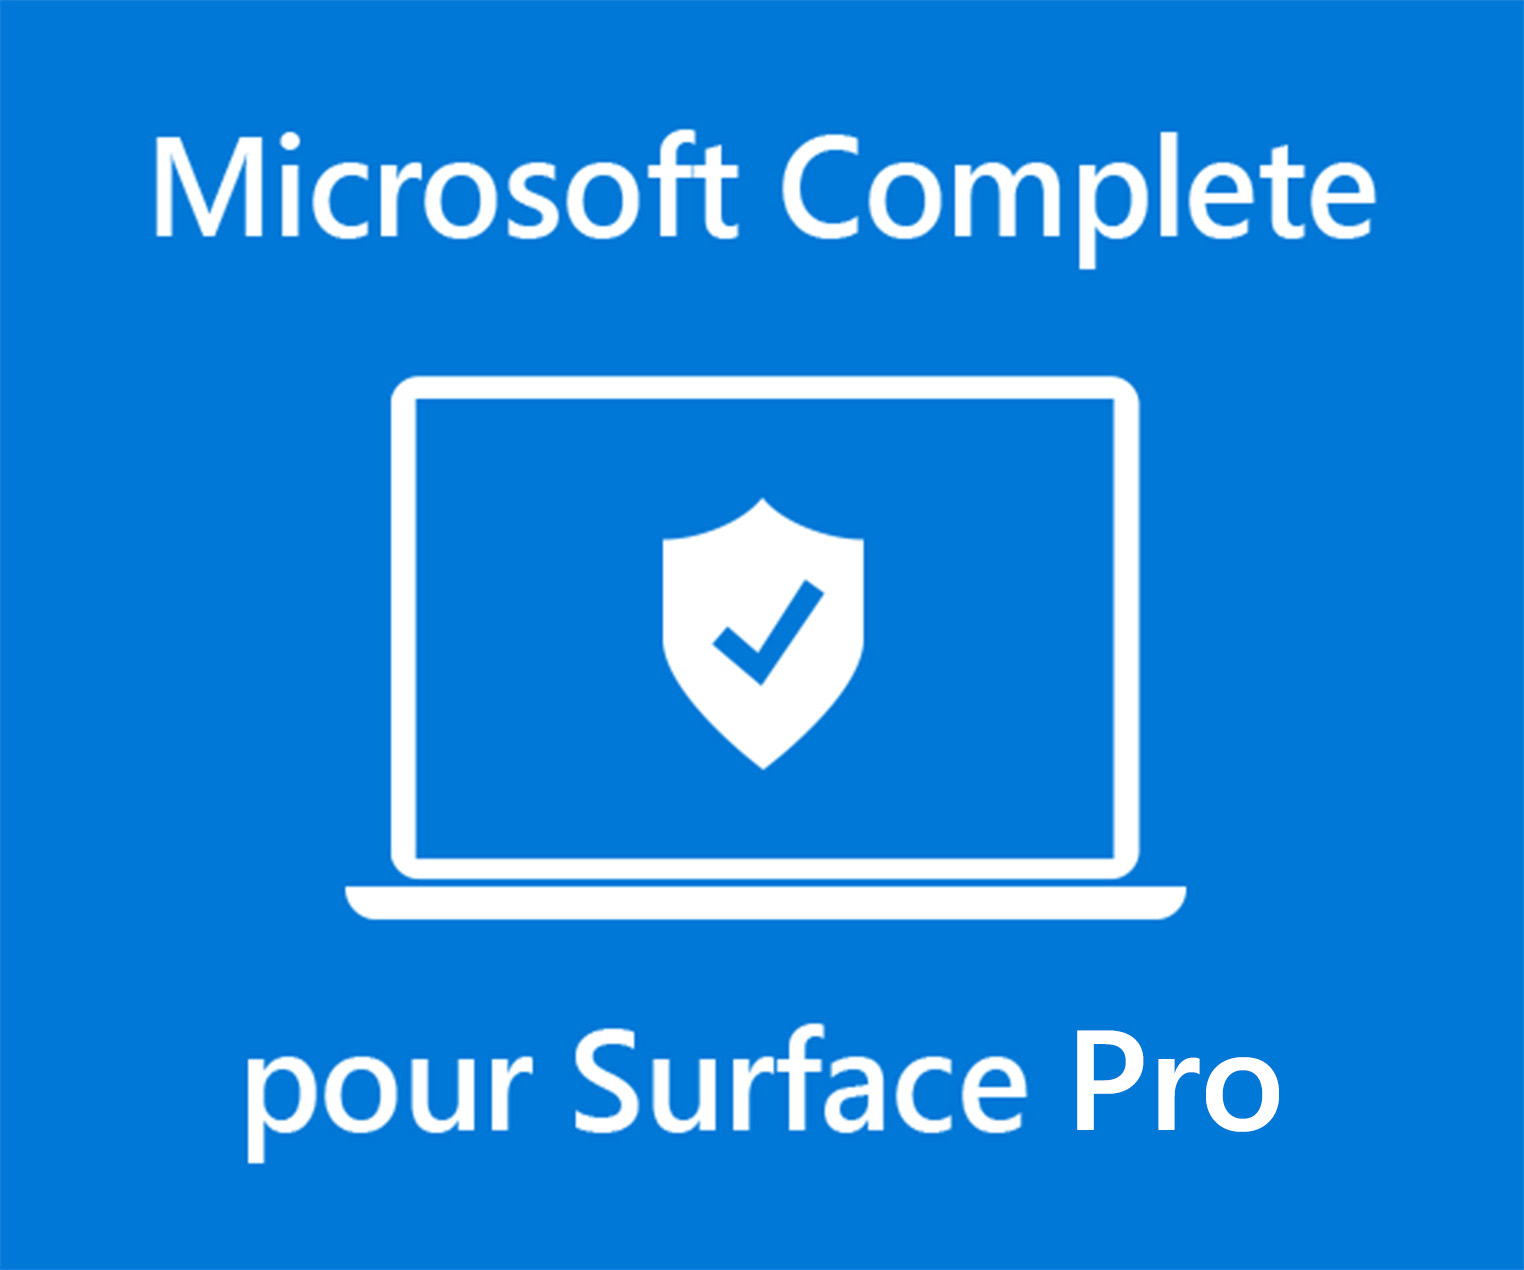 Microsoft Complete for Business Extended Service Plan for Surface Pro (4-year)